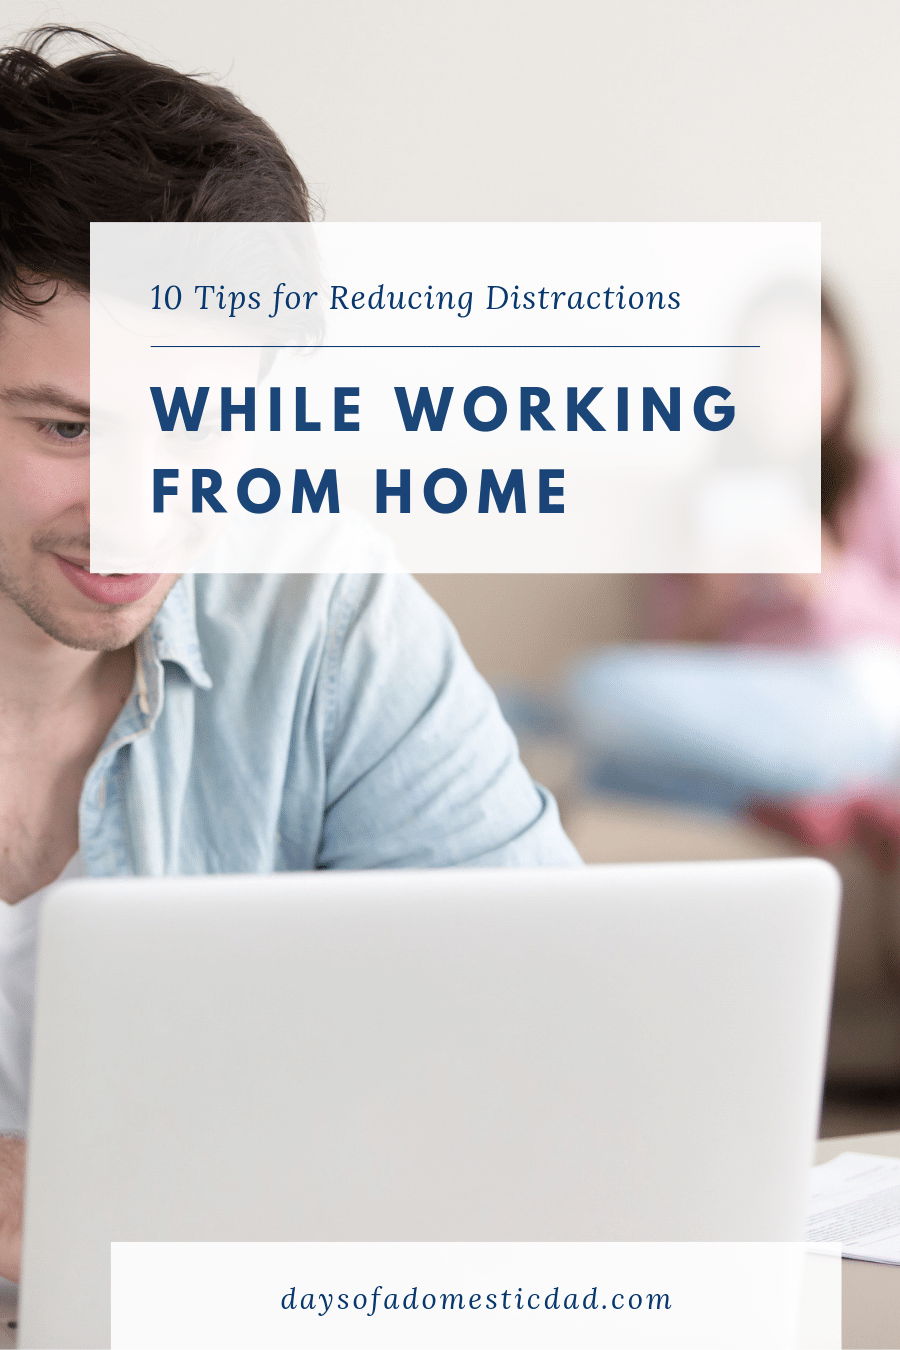 10 Tips for Reducing Distractions While Working from Home